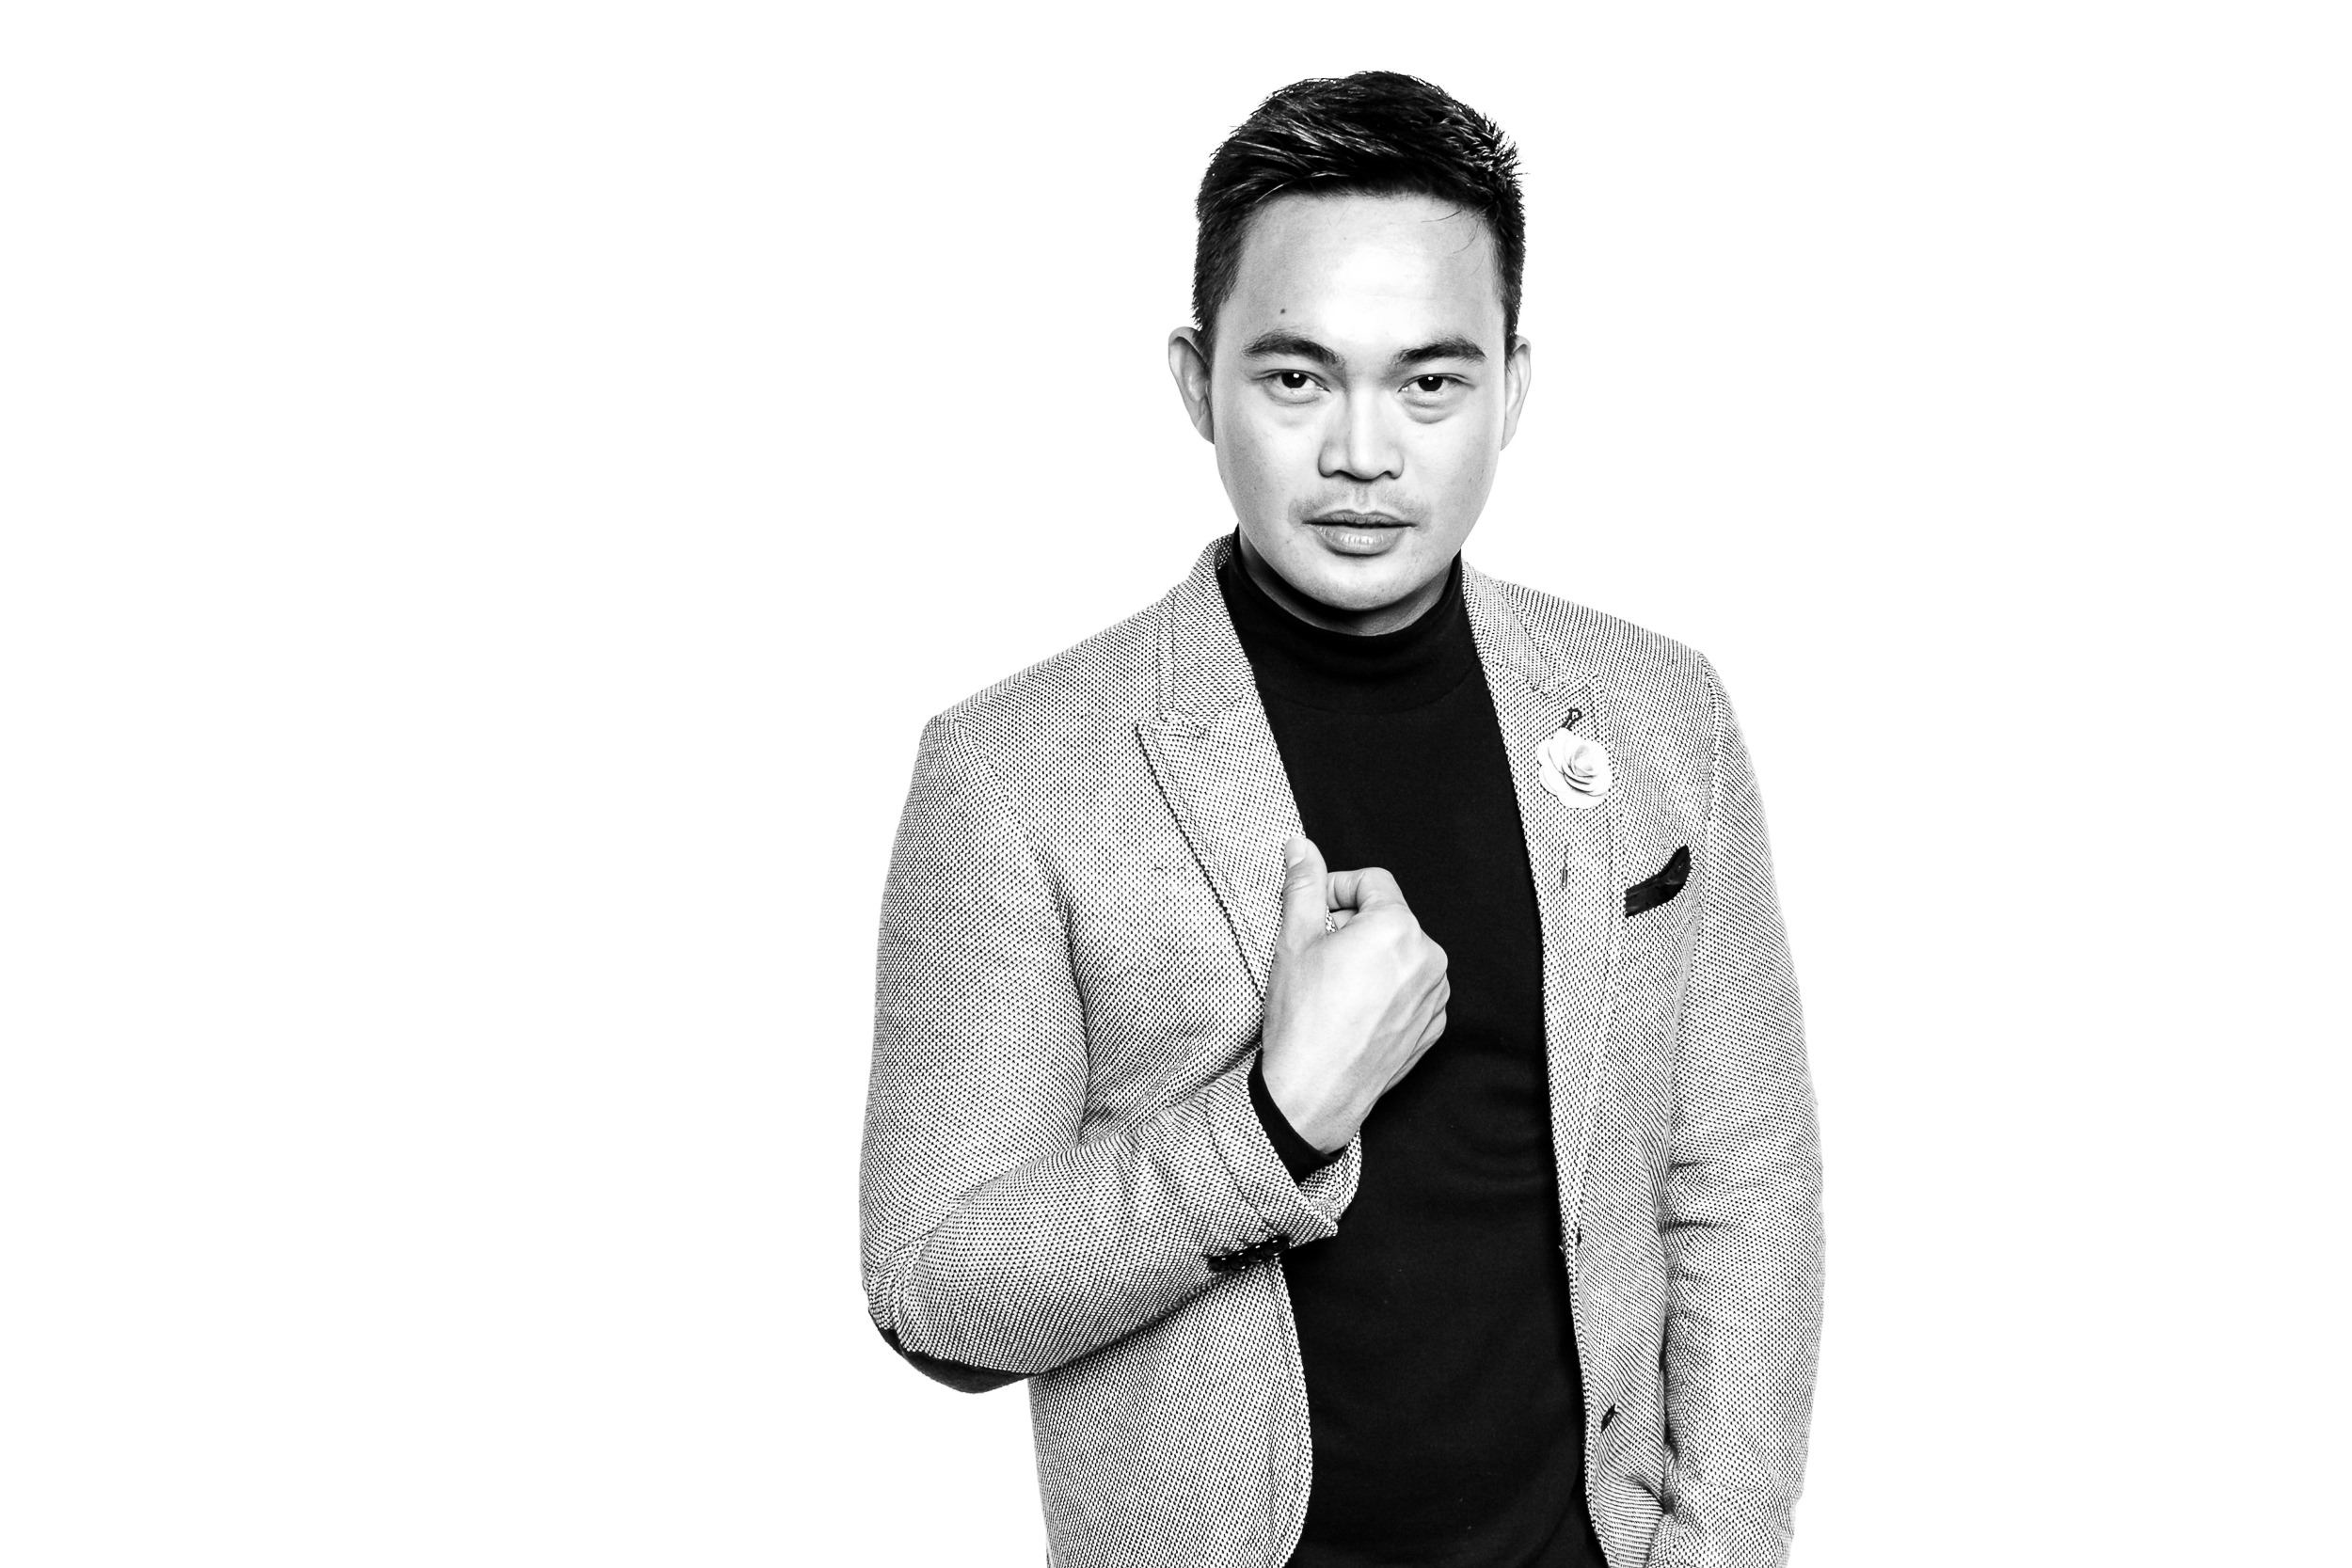 luxury black and white portrait photo booth.jpg